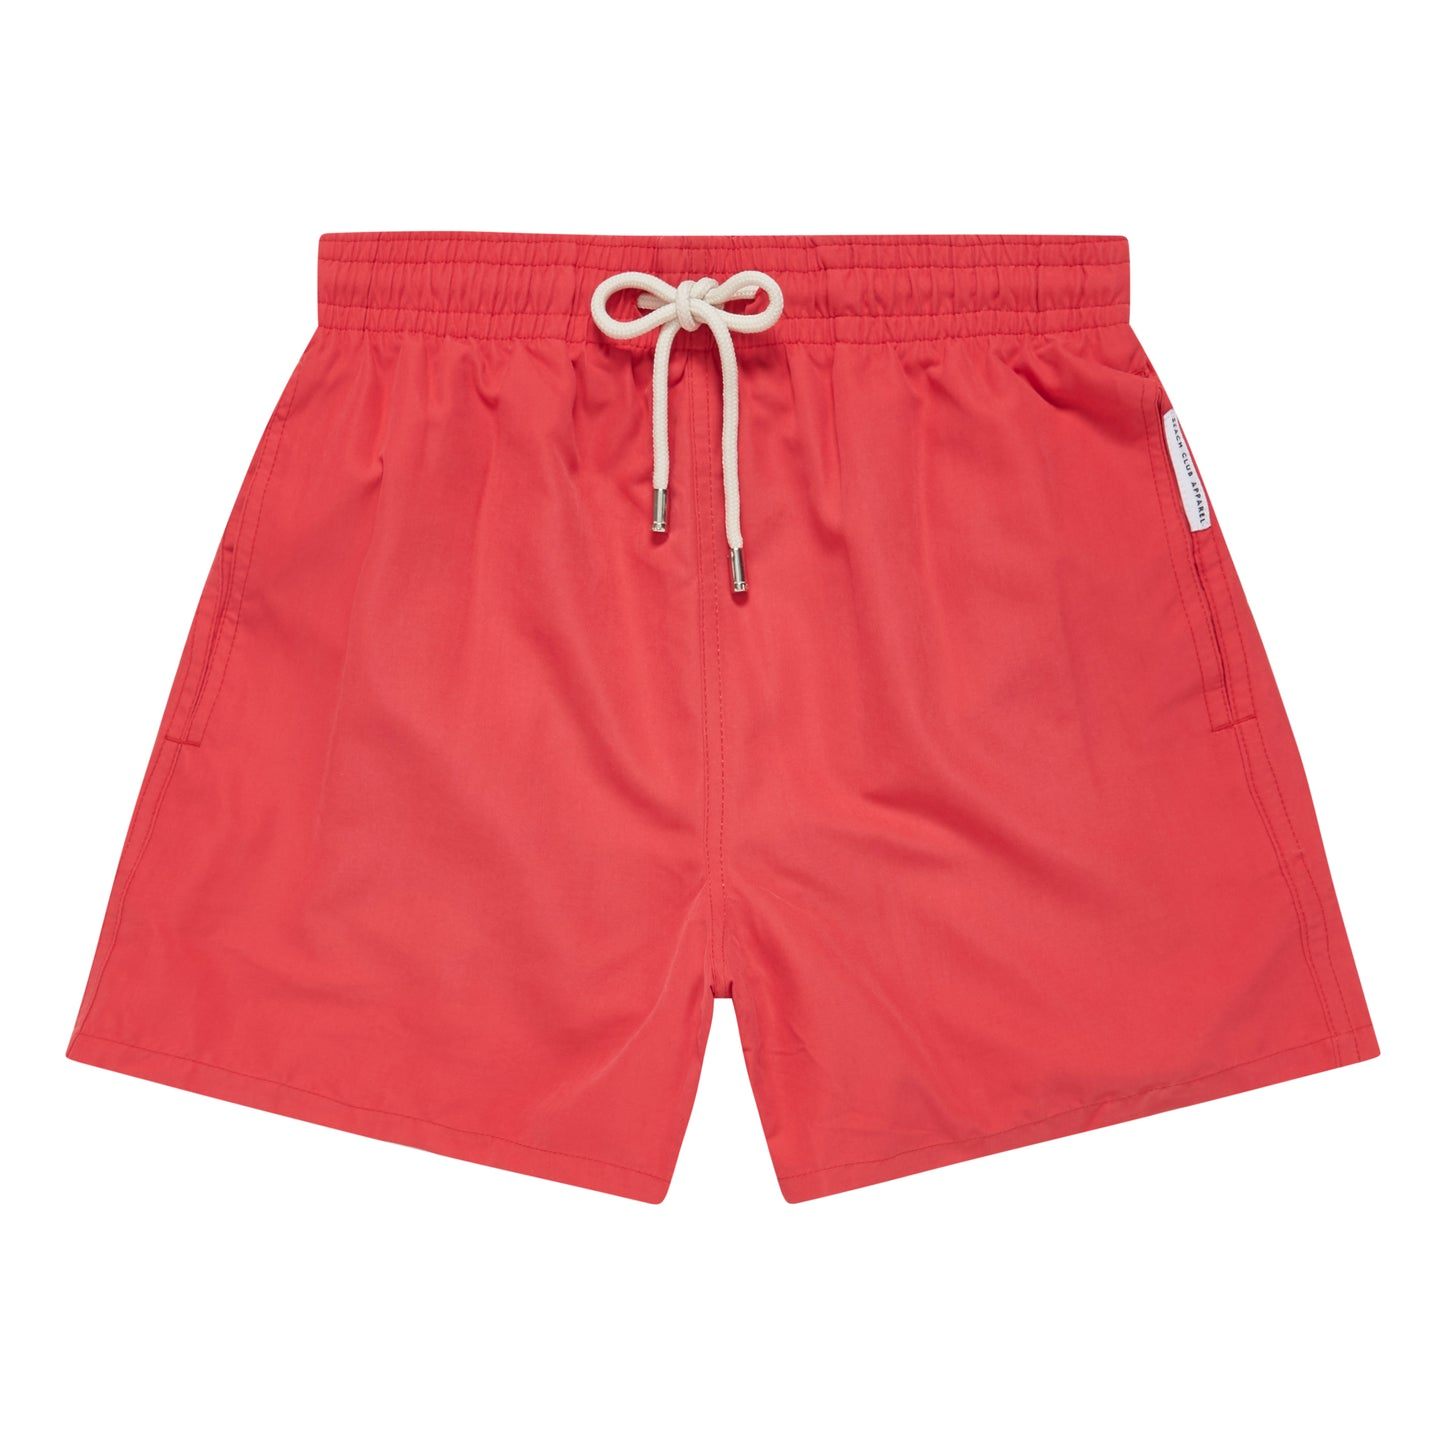 Beach Club Apparel Coral Reef (Red) - Union 22